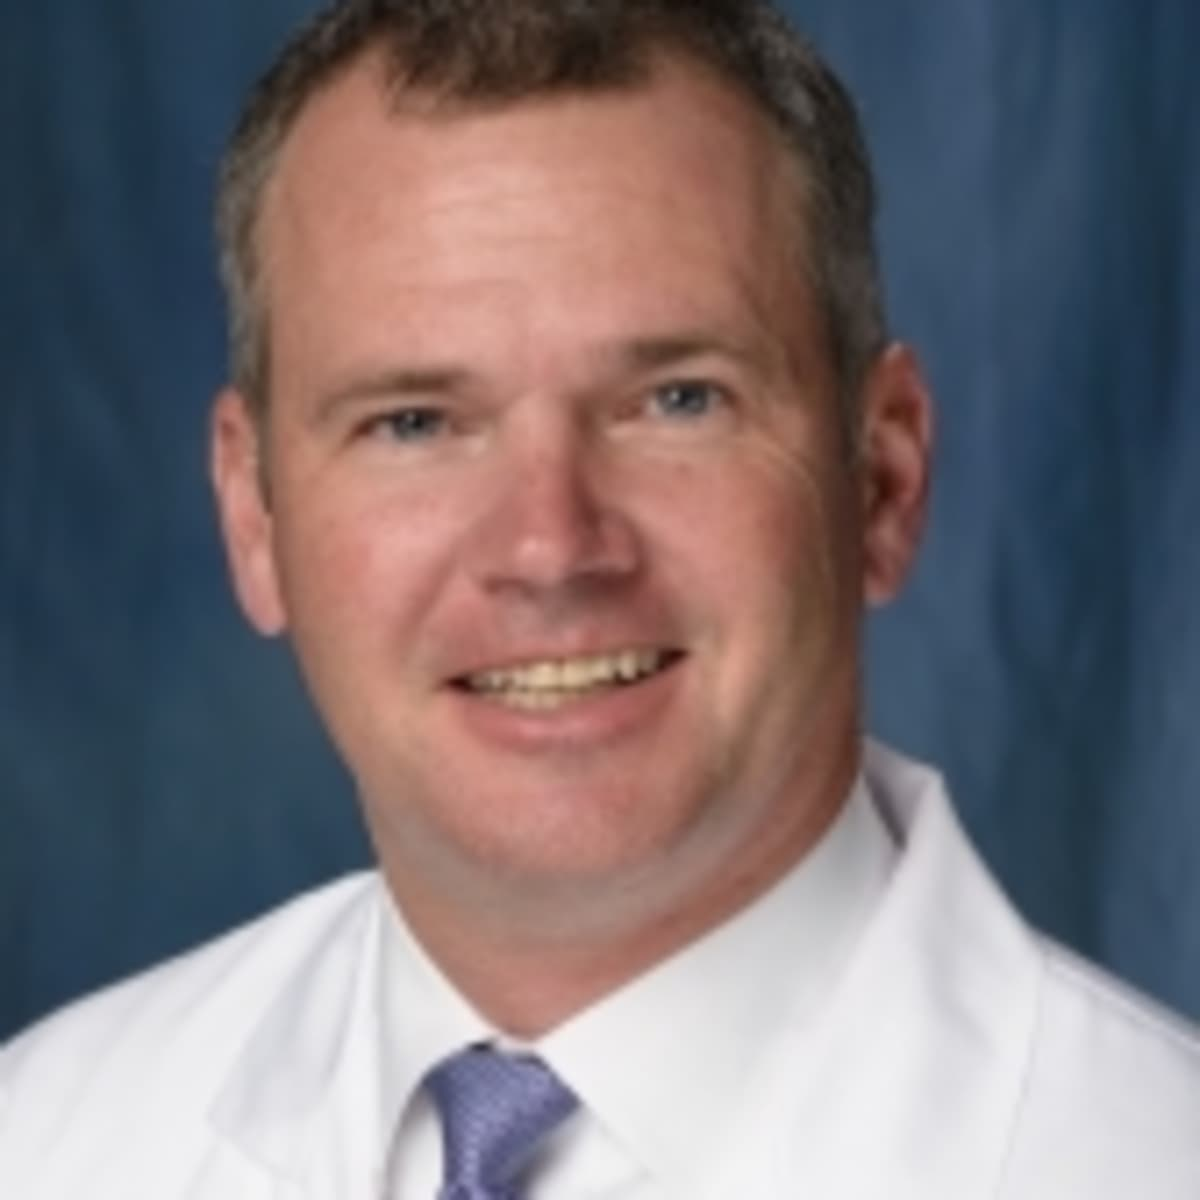 dr steven hughes md gainesville fl surgeon